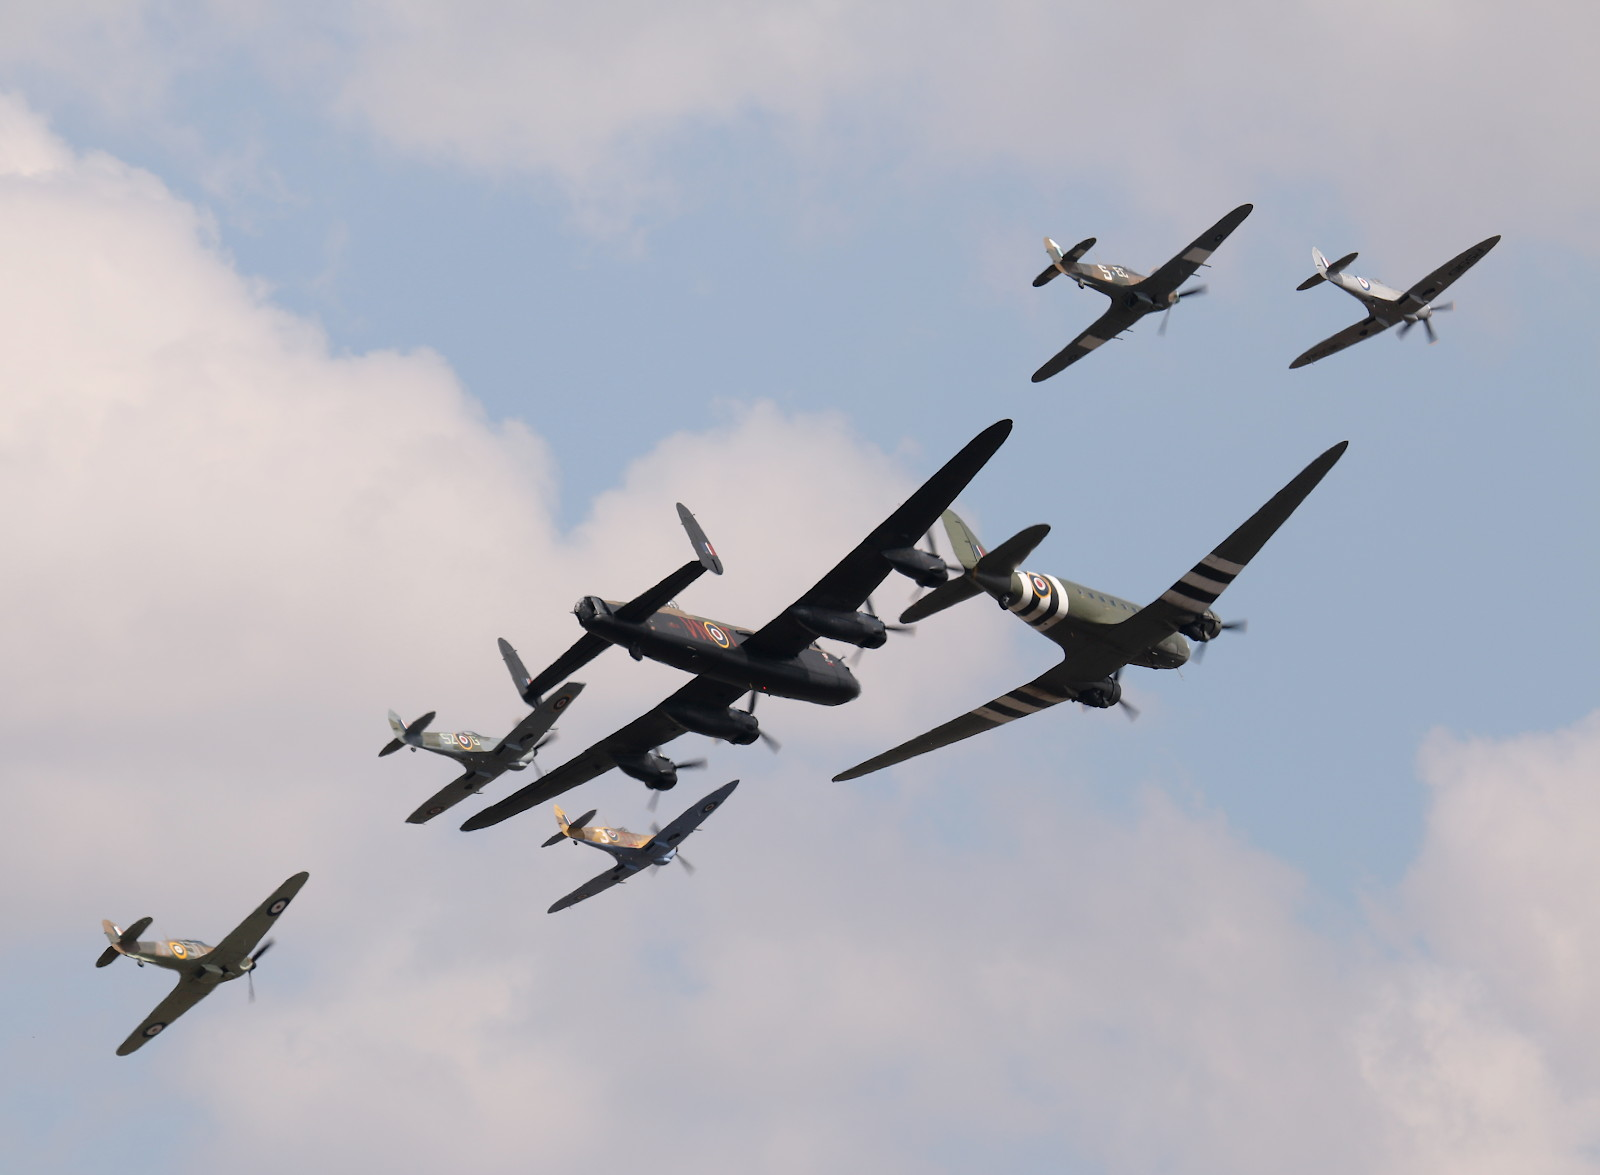 Battle of Britain Memorial Flight (BBMF) der Royal Air Force © Doppeladler.com